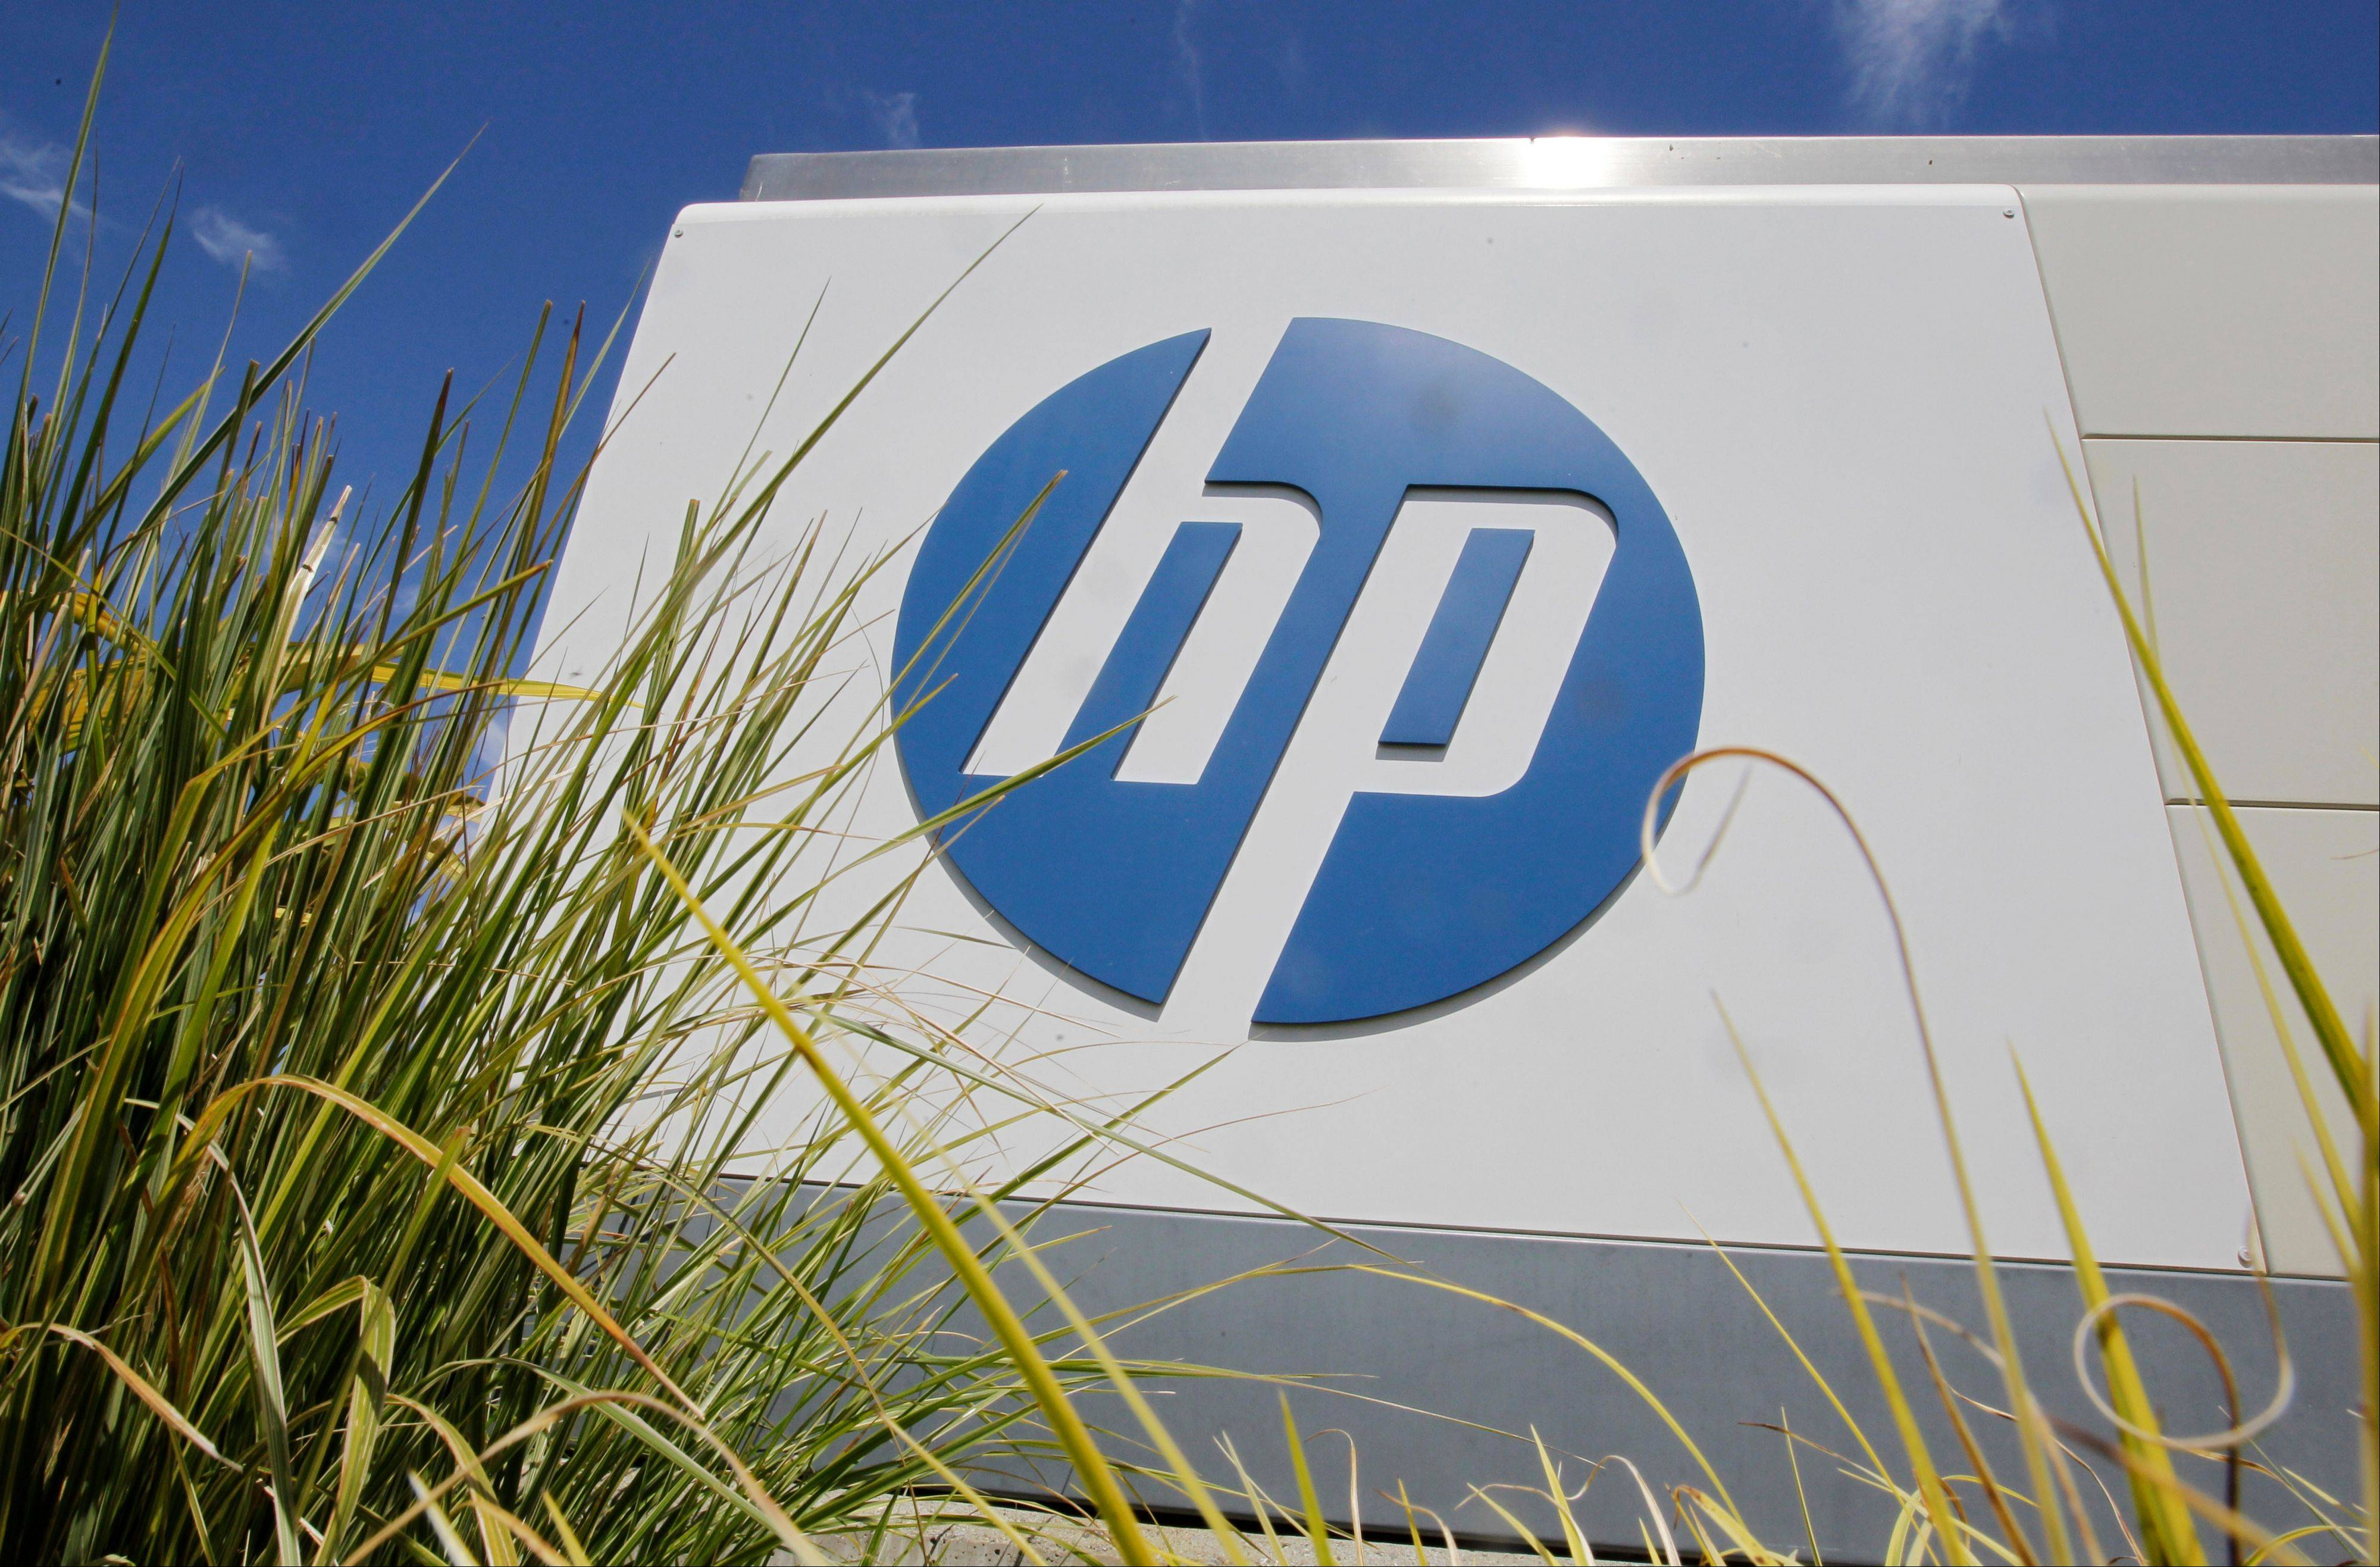 Hewlett-Packard, which acquired the Autonomy Corp. software company last year, says former Autonomy managers misreported finances to make the company appear more successful than it was.